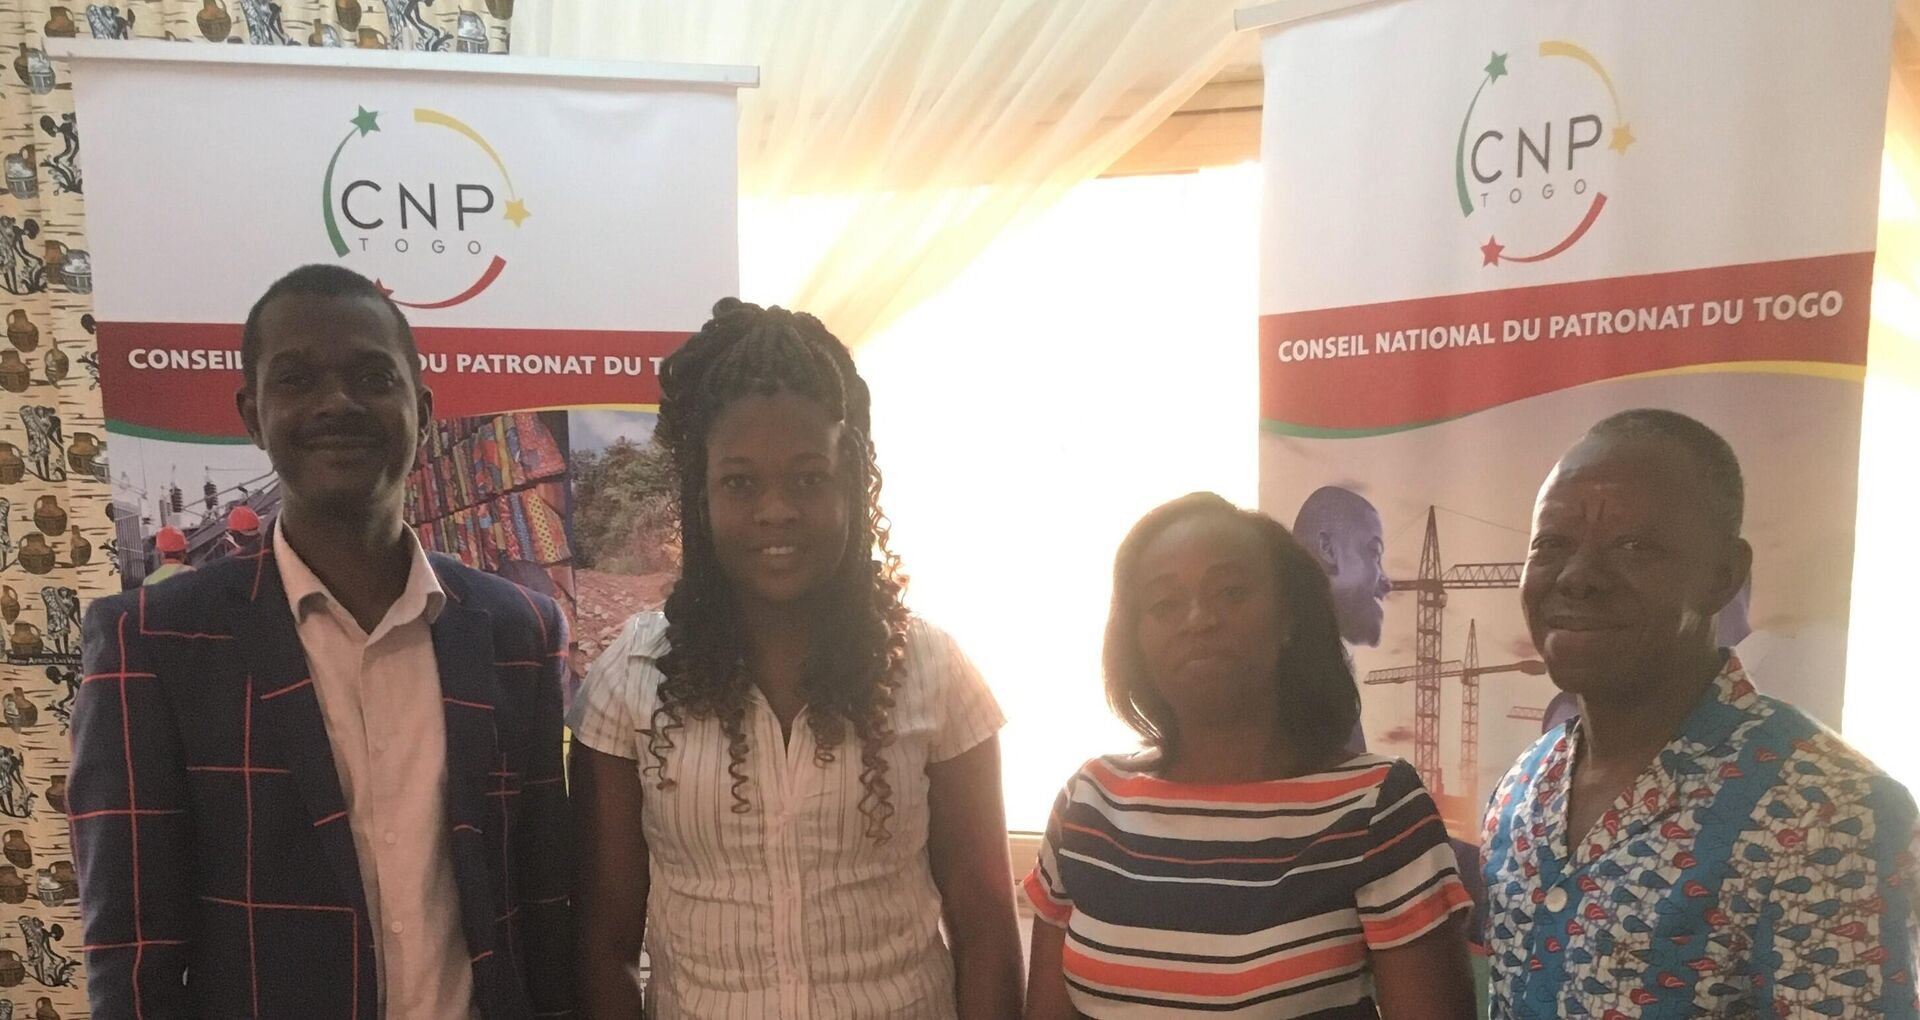 CNP-Togo. Continuous development of the team and complementary competencies